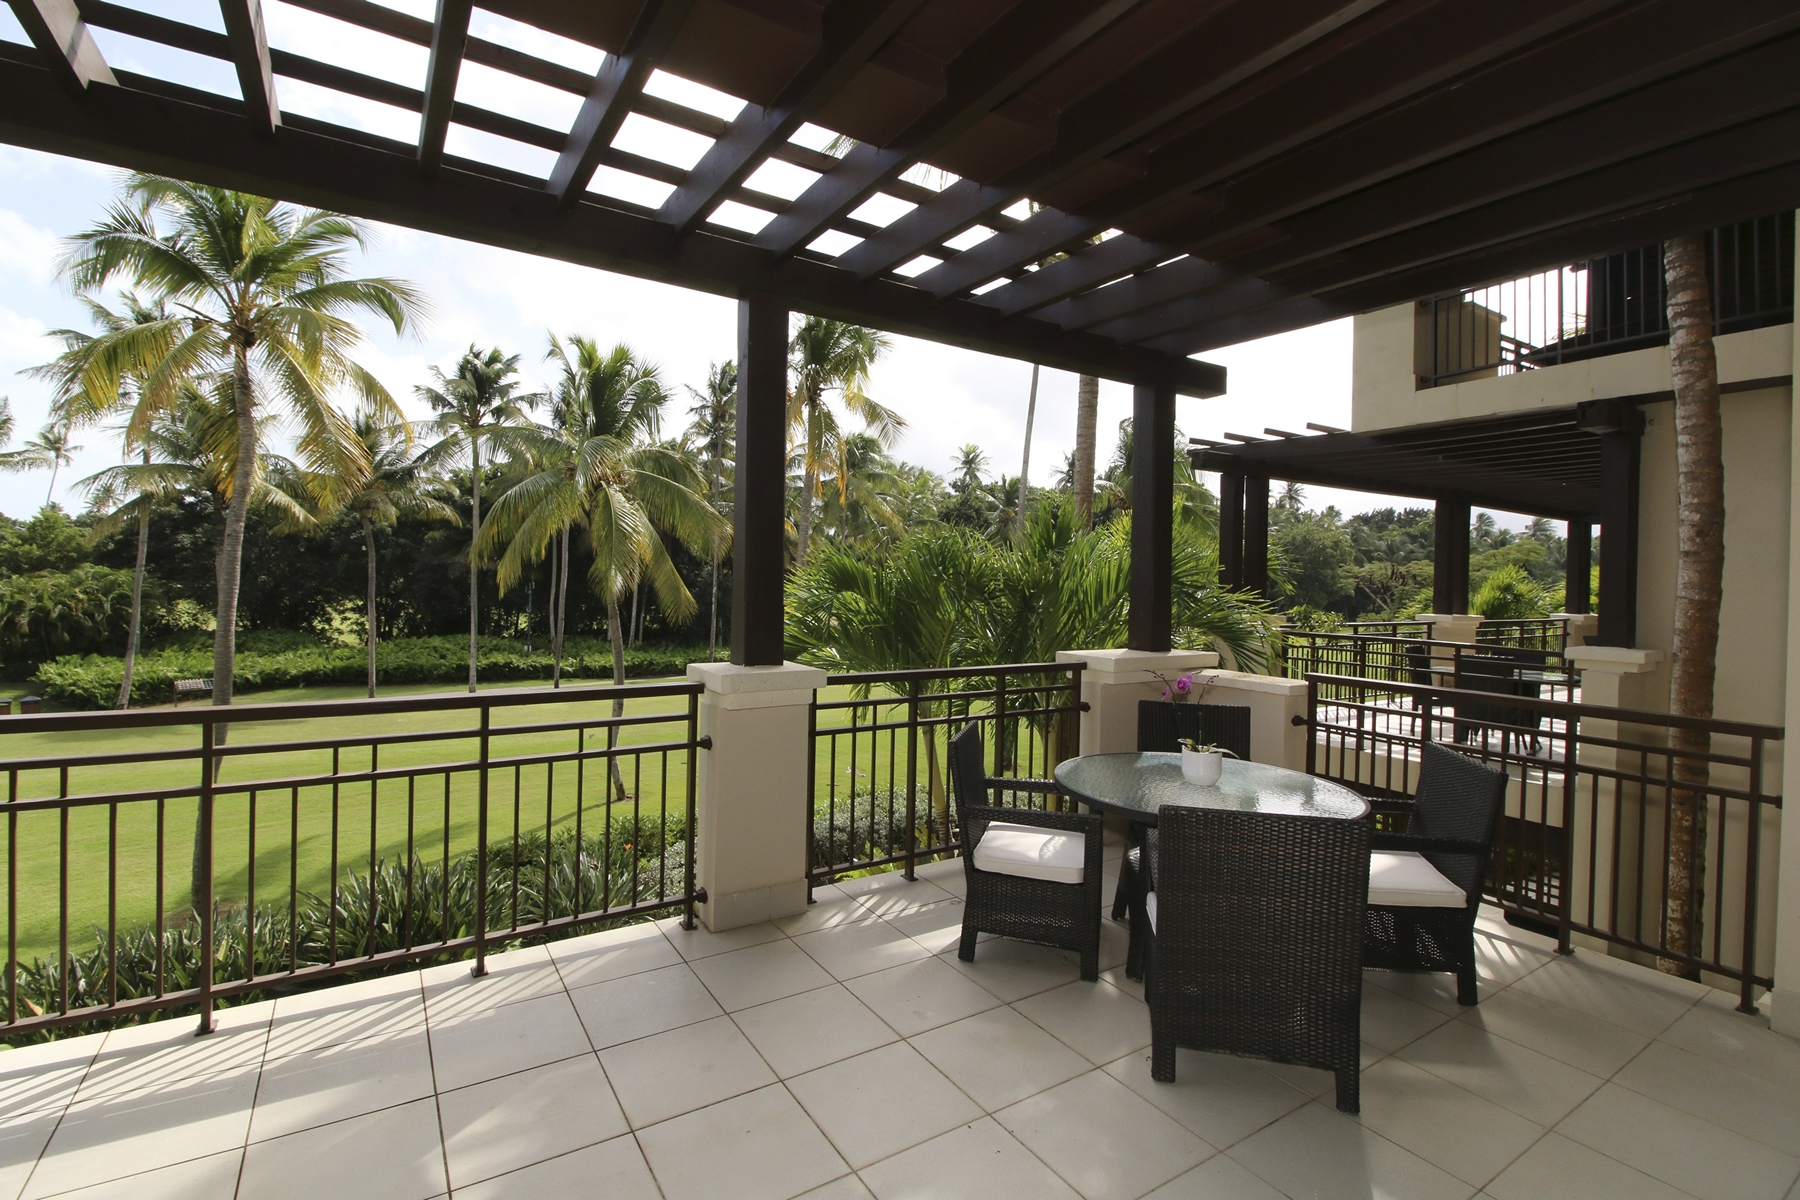 Additional photo for property listing at Golf front villa, St Regis Bahia Beach State Road 187, Km. 4.2 St Regis, Bahia Beach Bahia Beach, Puerto Rico 00745 Πουερτο Ρικο